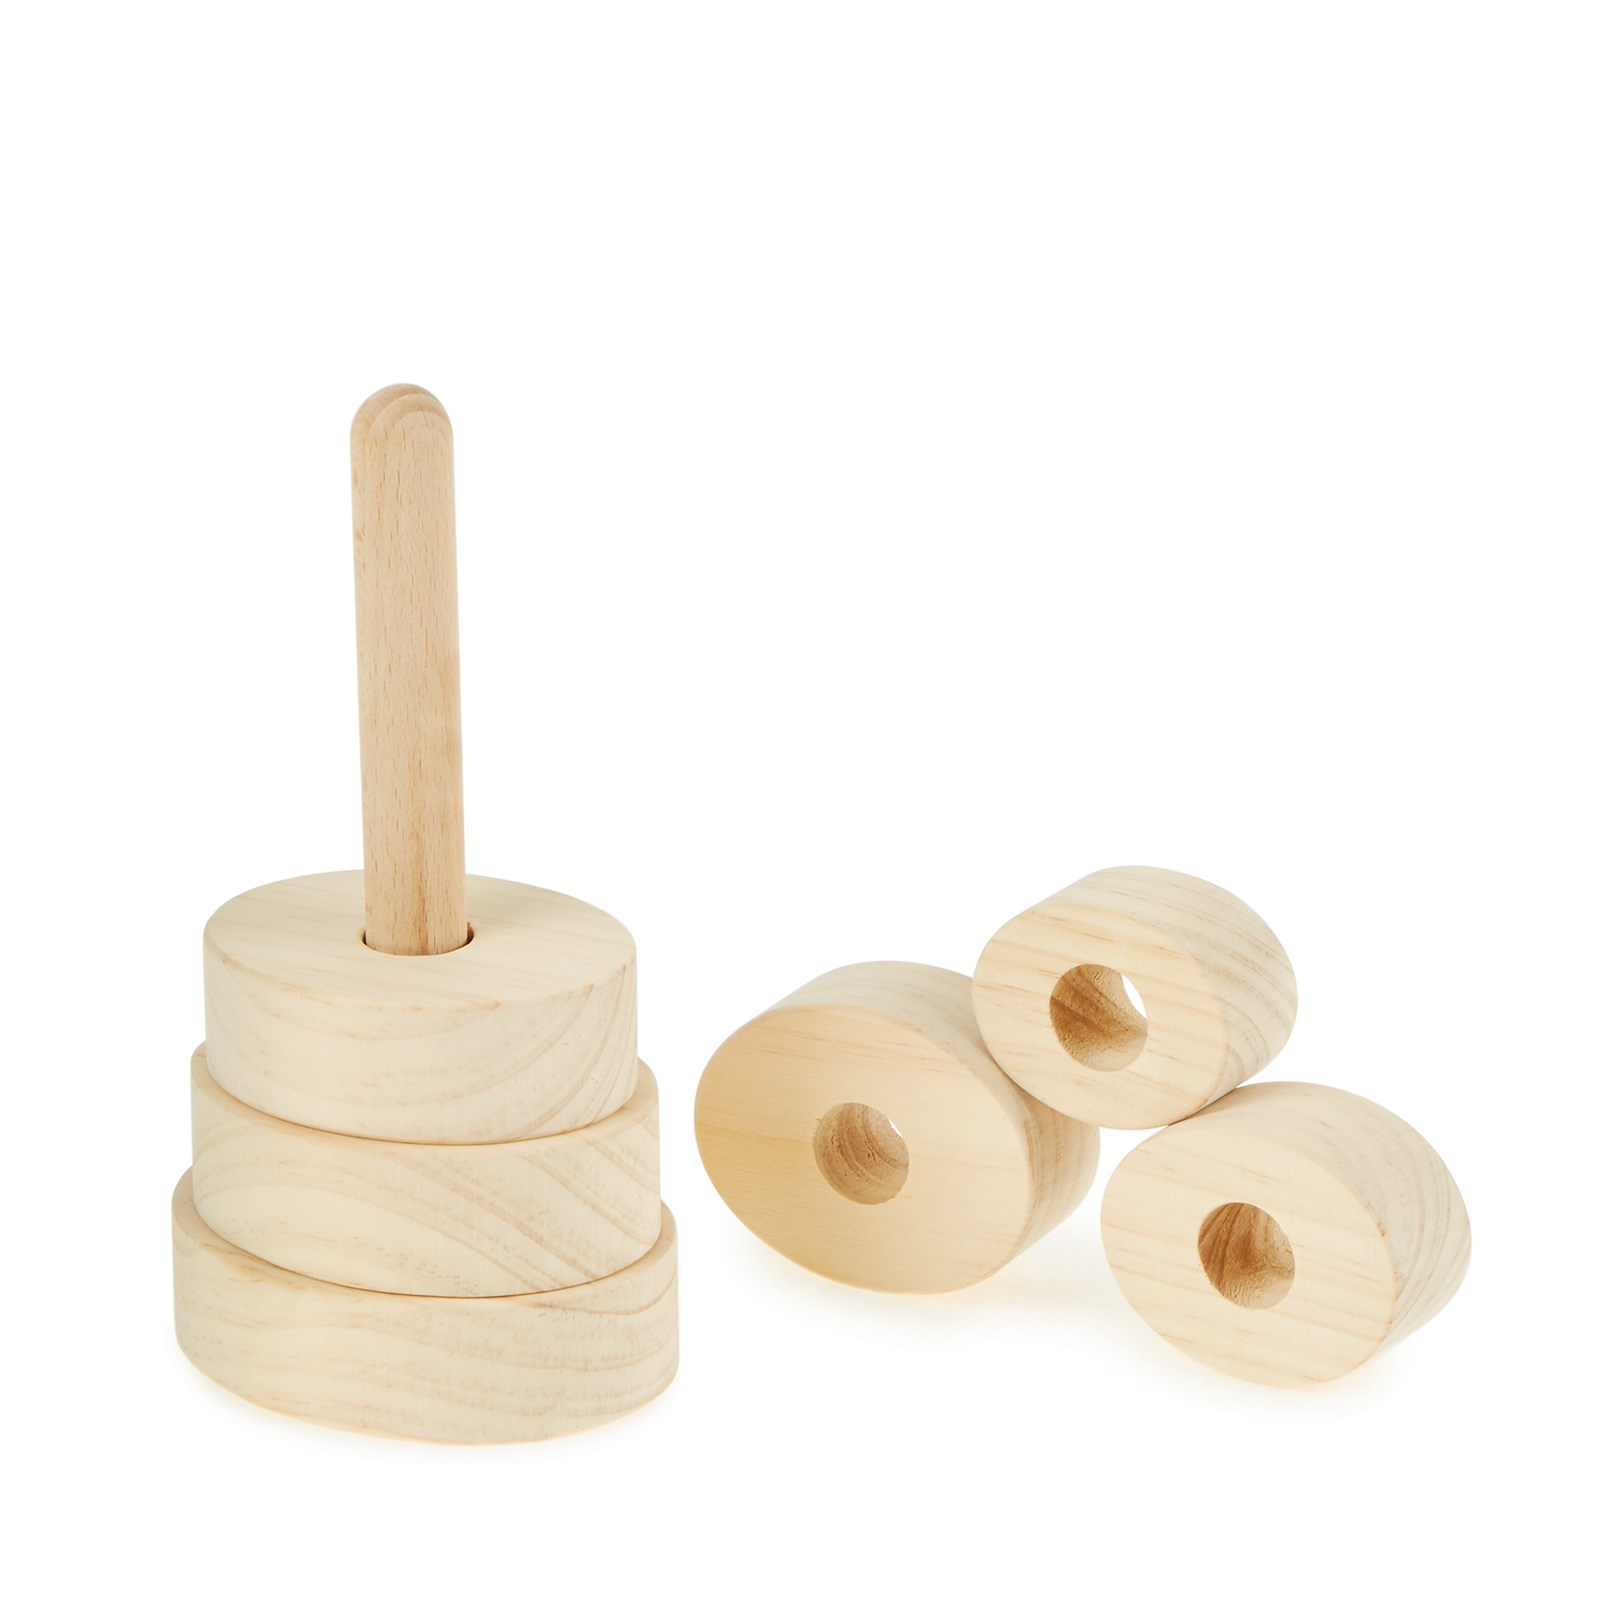 Small Wooden Oval Stacker from Hope Education